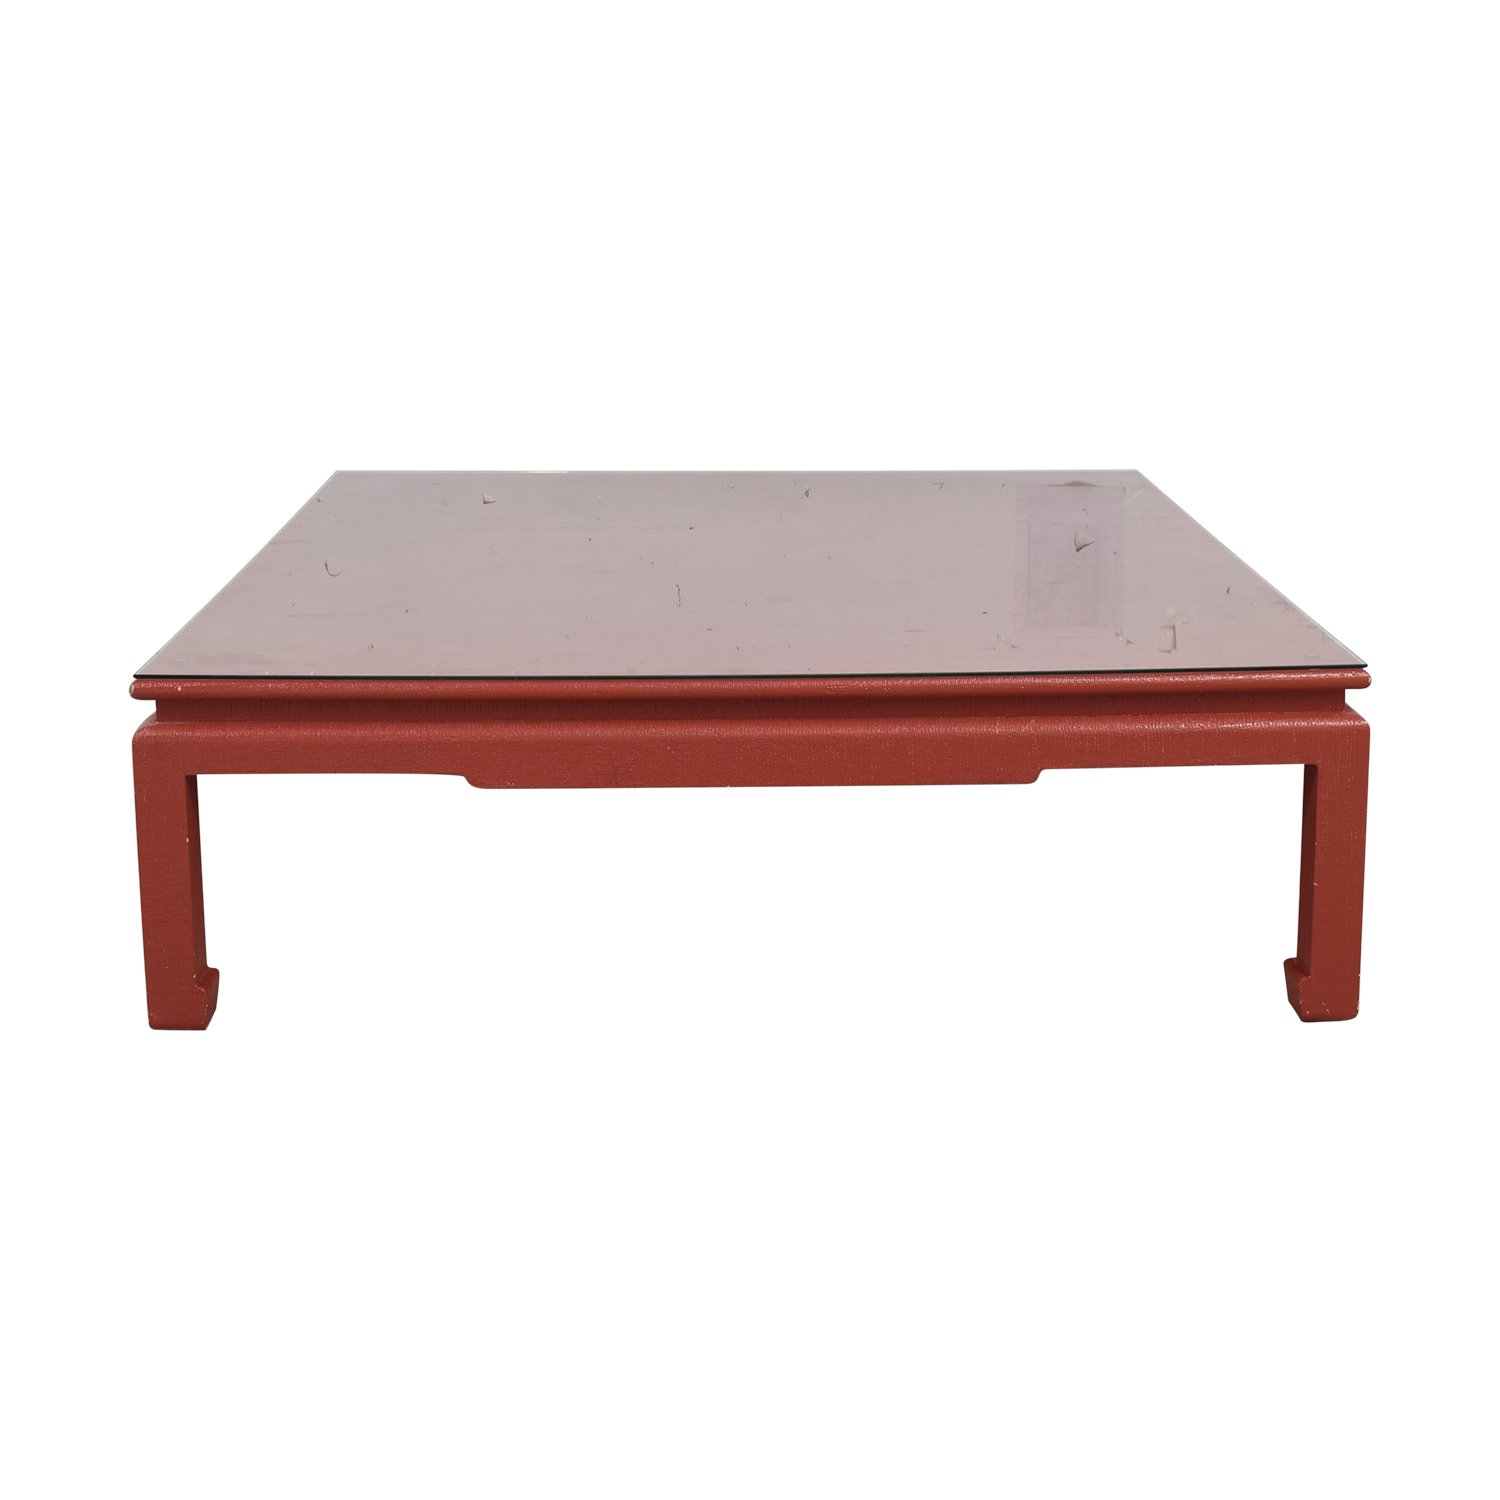 Custom Red Orange Square Coffee Table nj